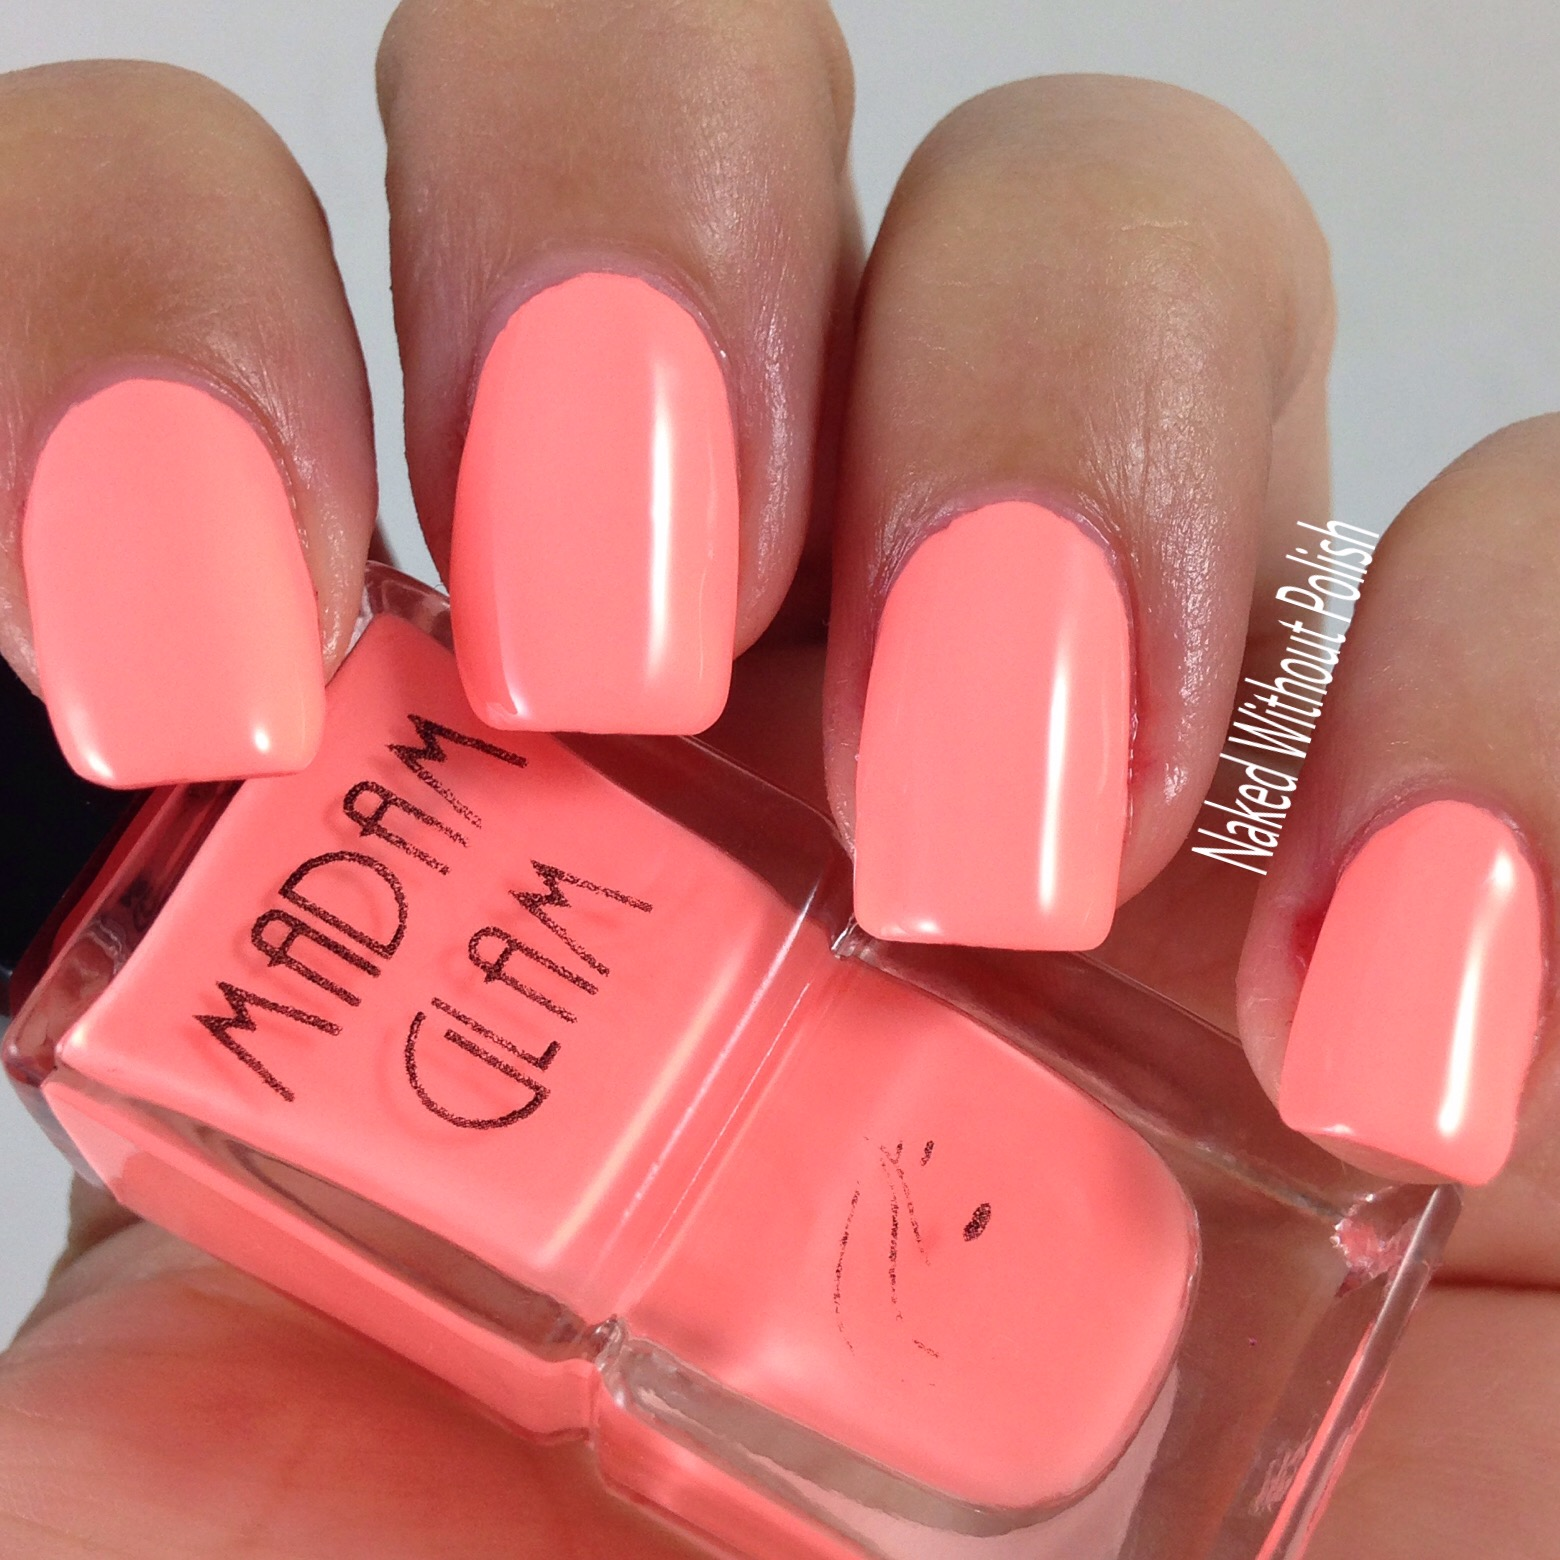 Madam-Glam-Coral-Passion-4